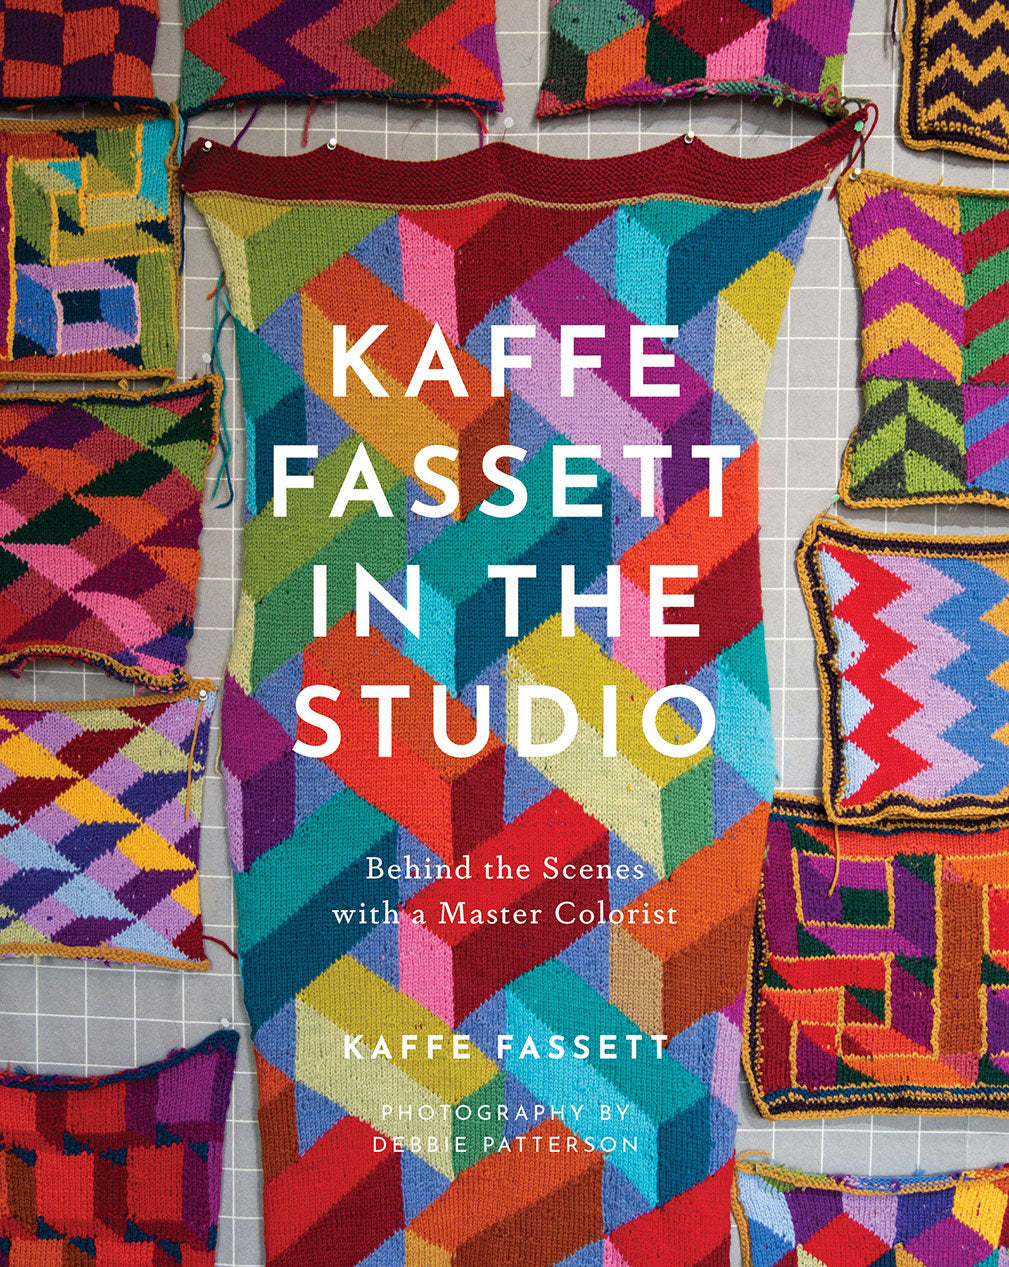 Kaffe Fassett in the Studio: Behind the Scenes with a Master Colorist, Signed by Kaffe